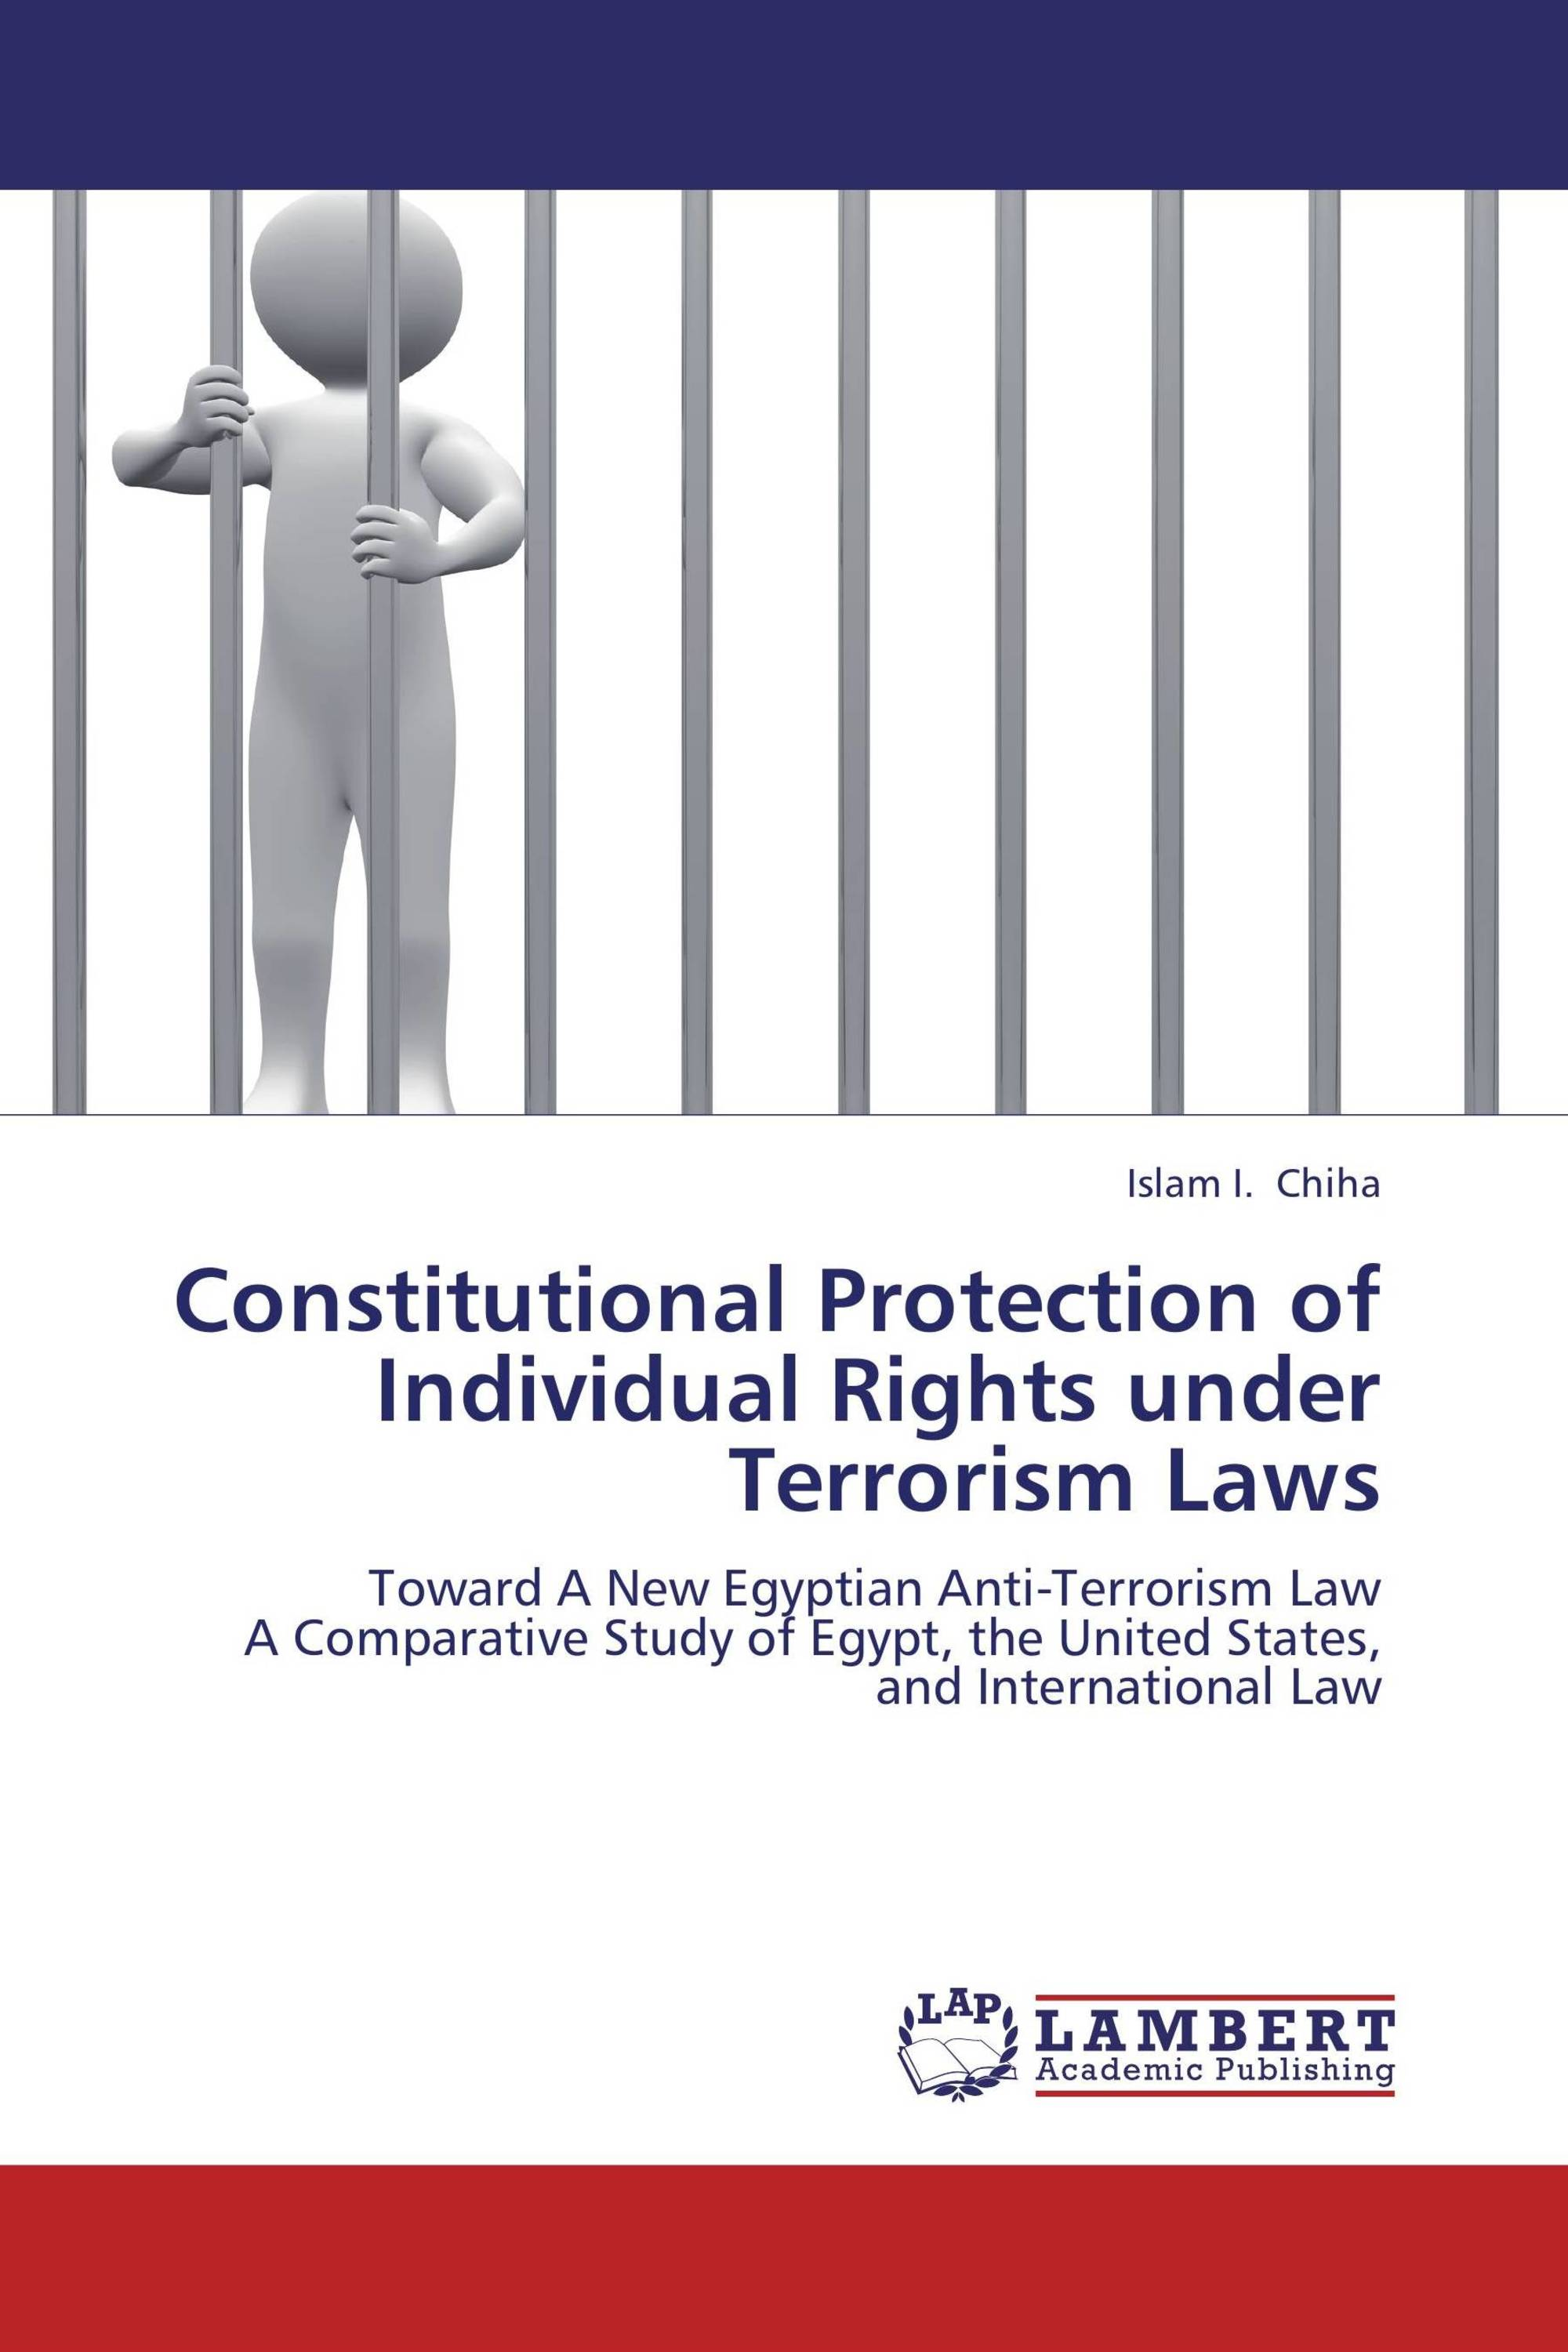 Constitutional Protection of Individual Rights under Terrorism Laws